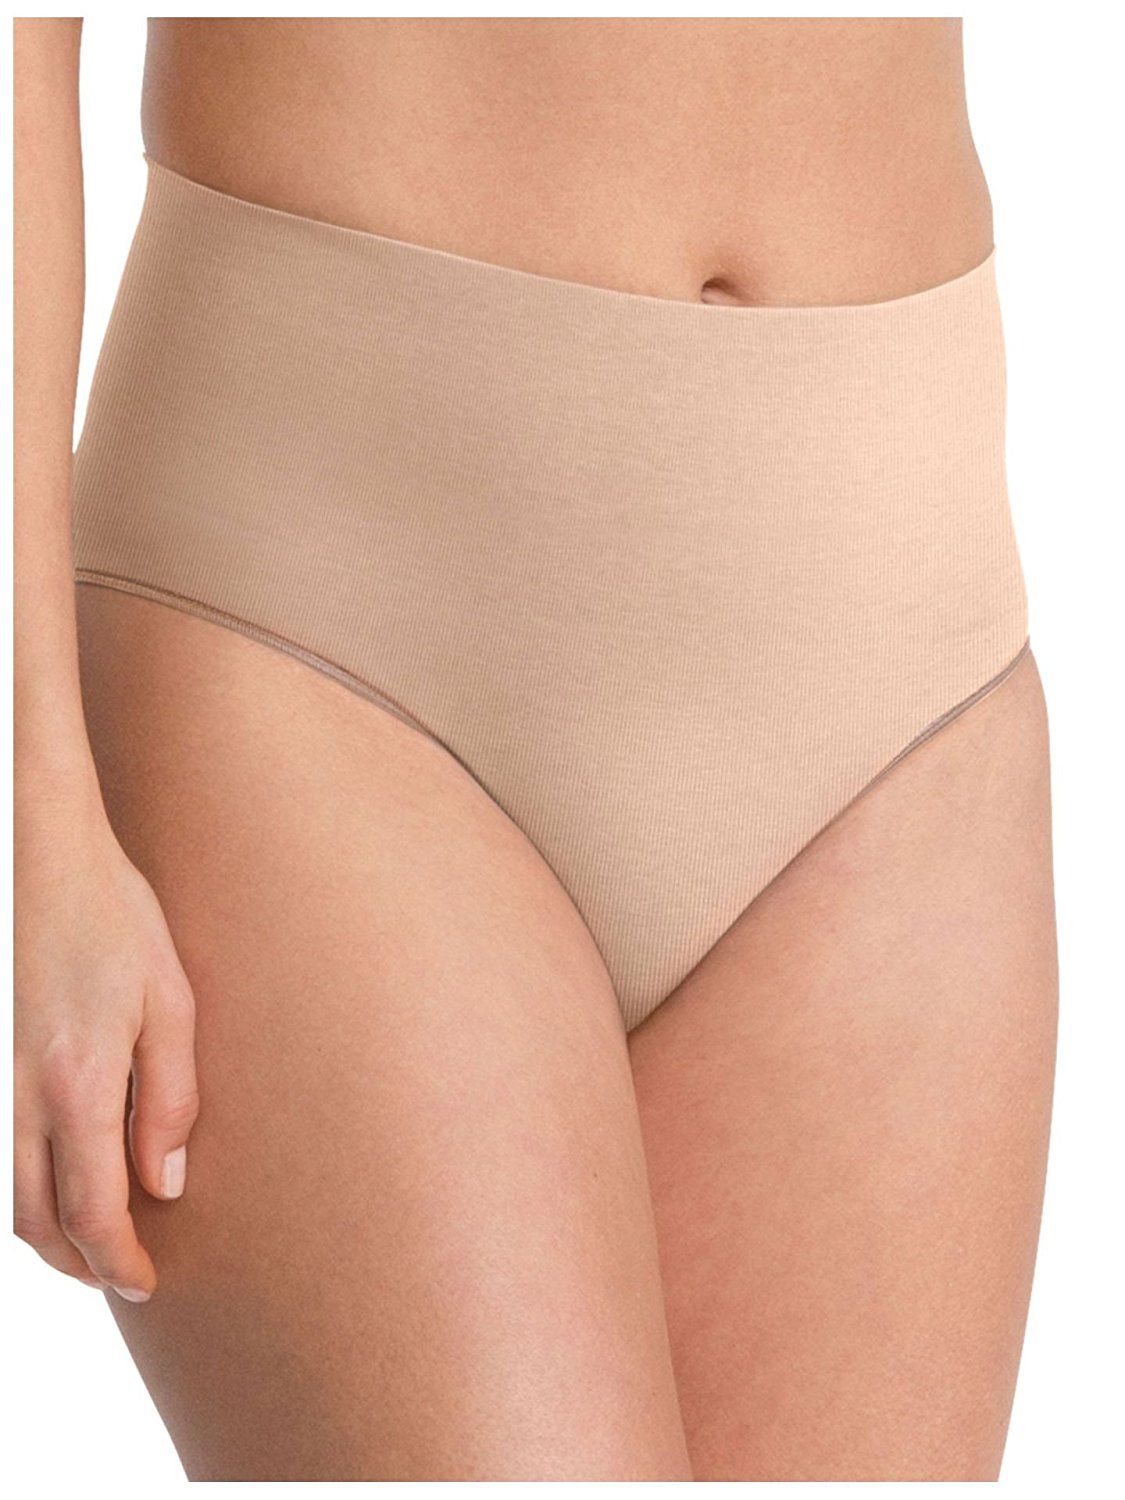 c2f4282d393 Get Quotations · SPANX Women s Everyday Shaping Seamless Panty